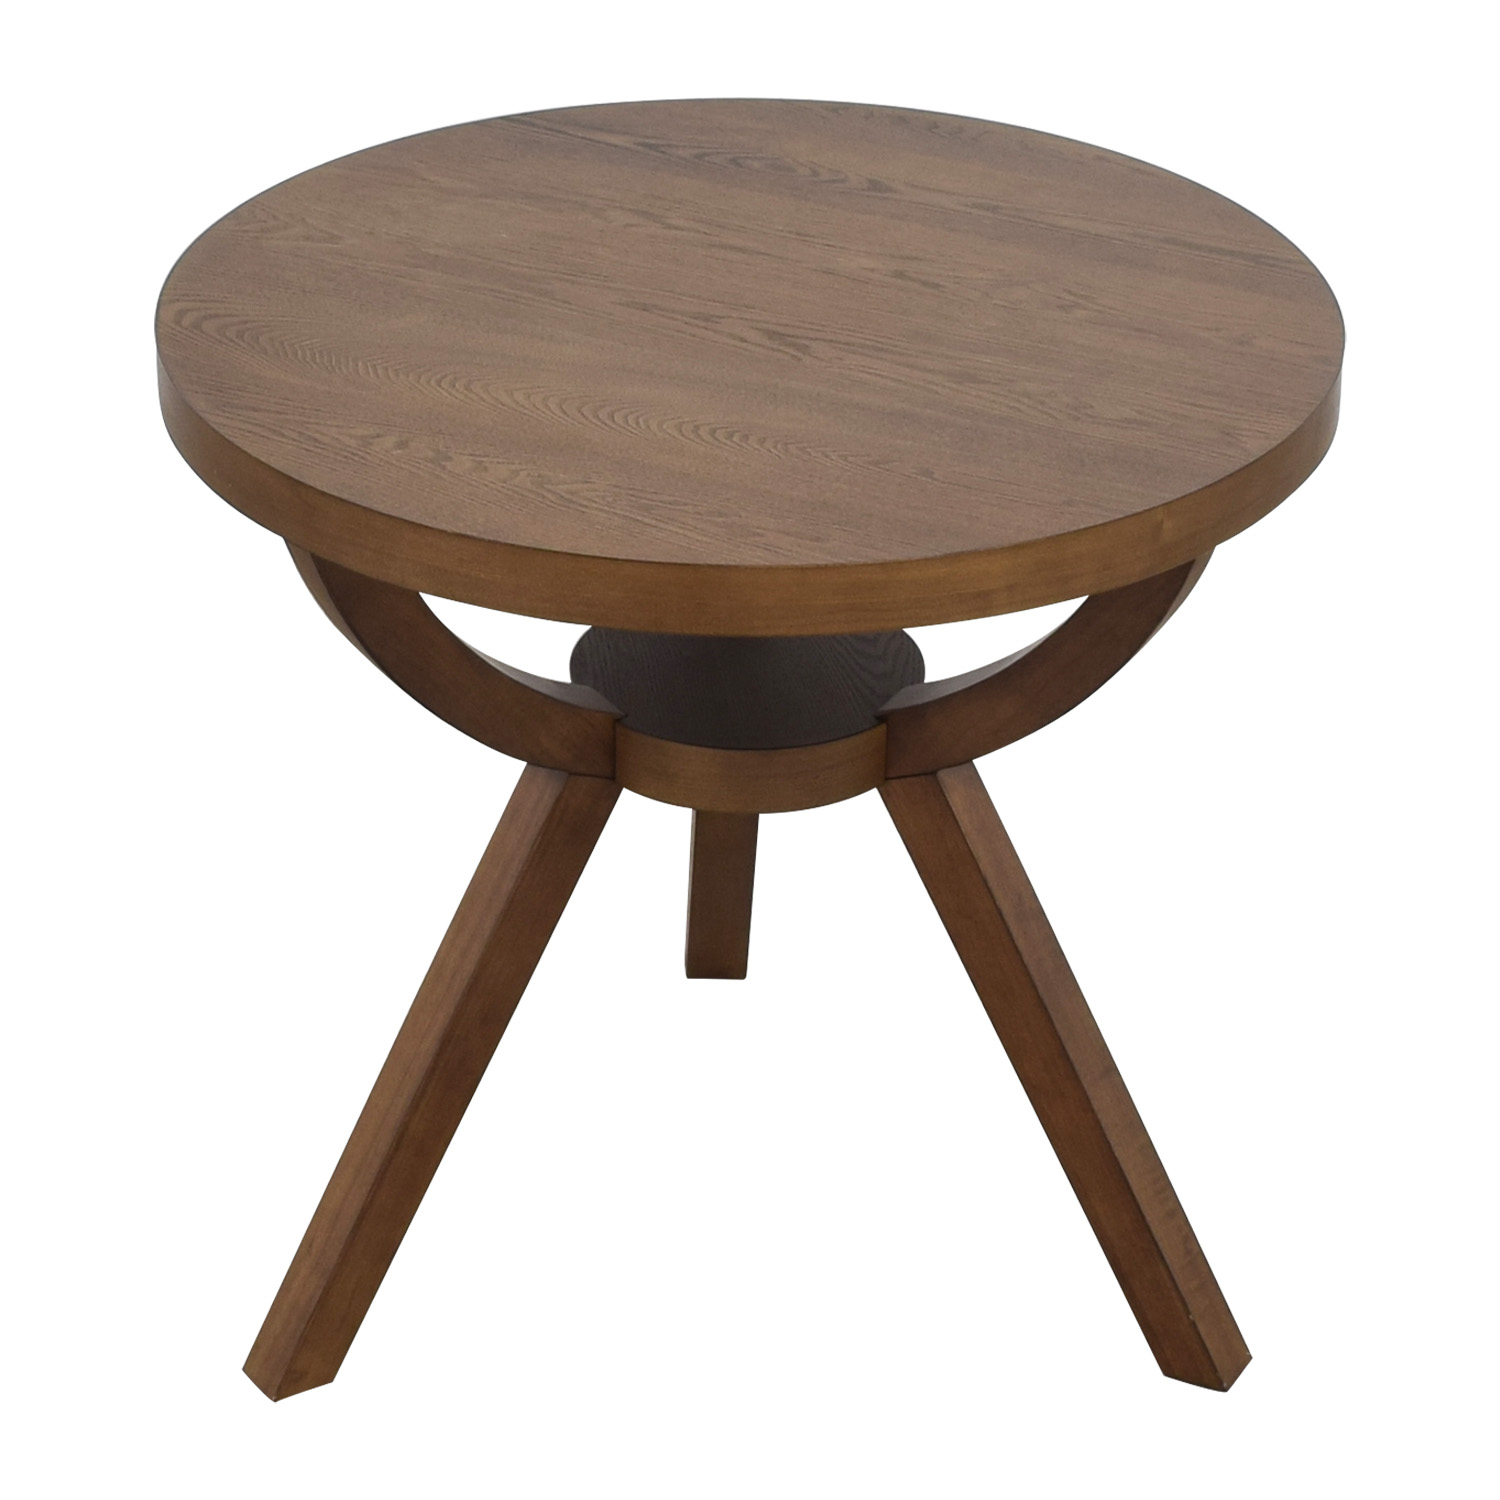 West Elm West Elm Round Wood Arc Table coupon